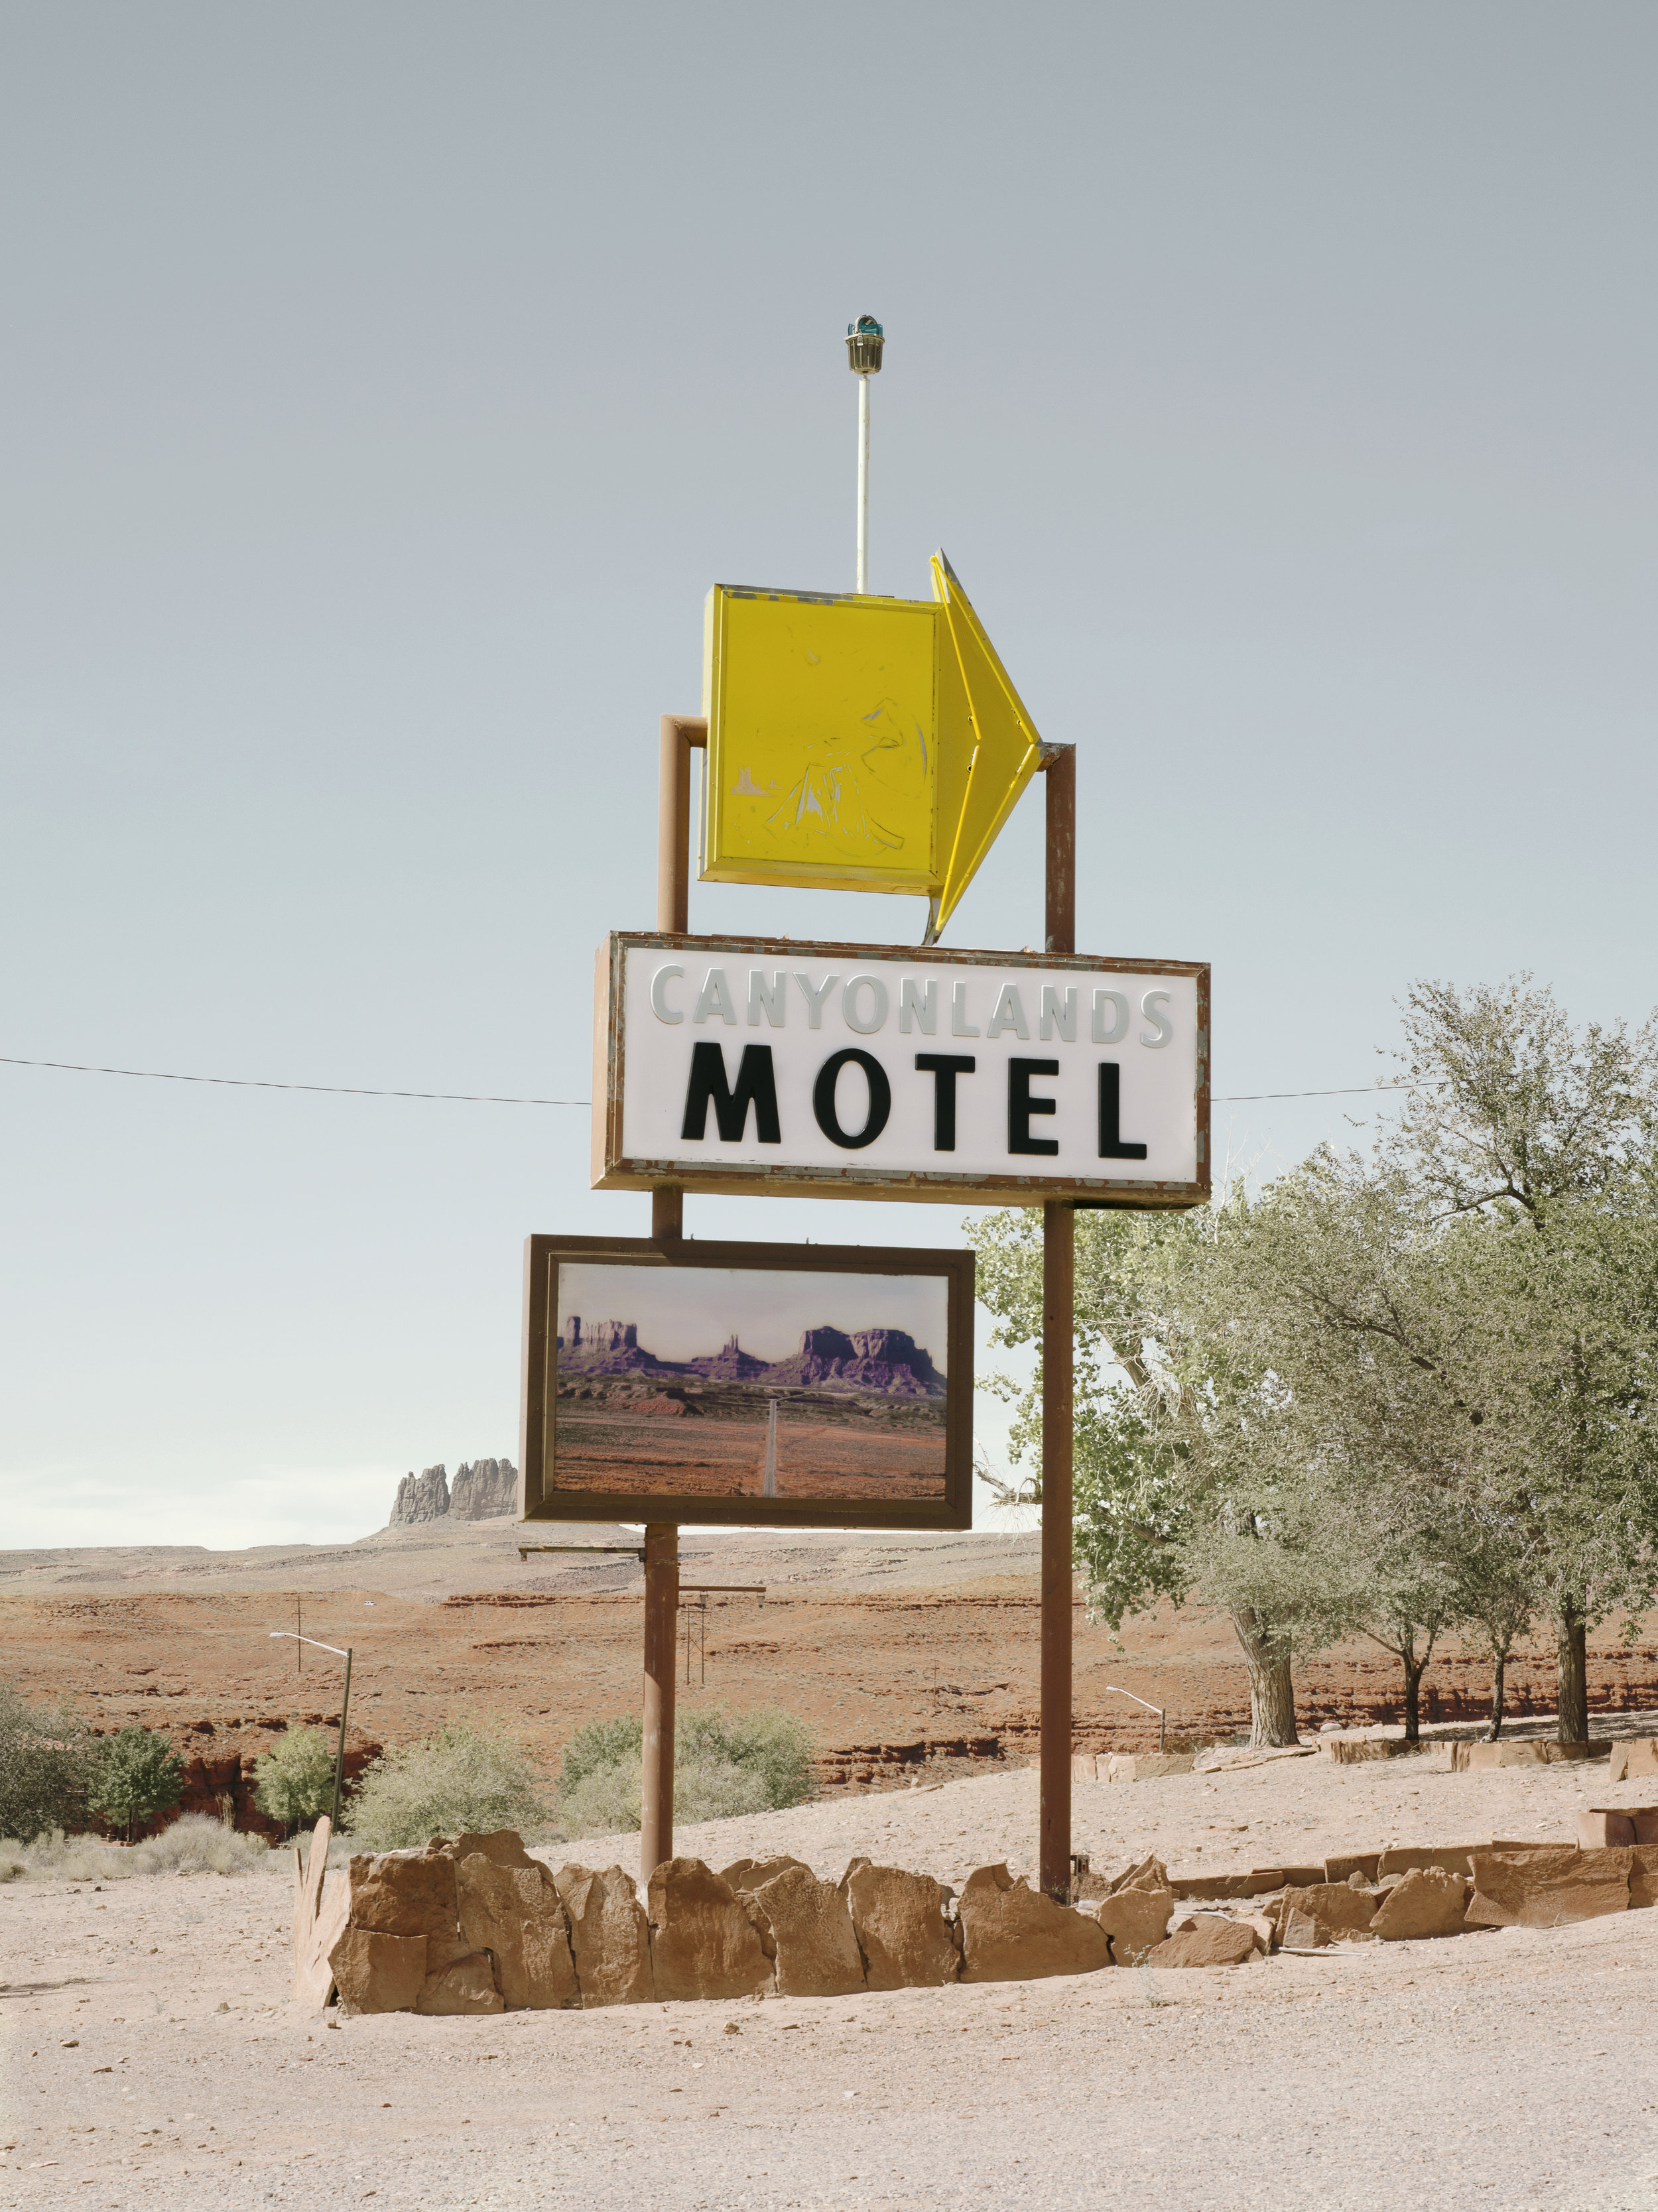 The Motel never visited, 2016 © Anja Niem. Courtesy of The Ravestijn Gallery.